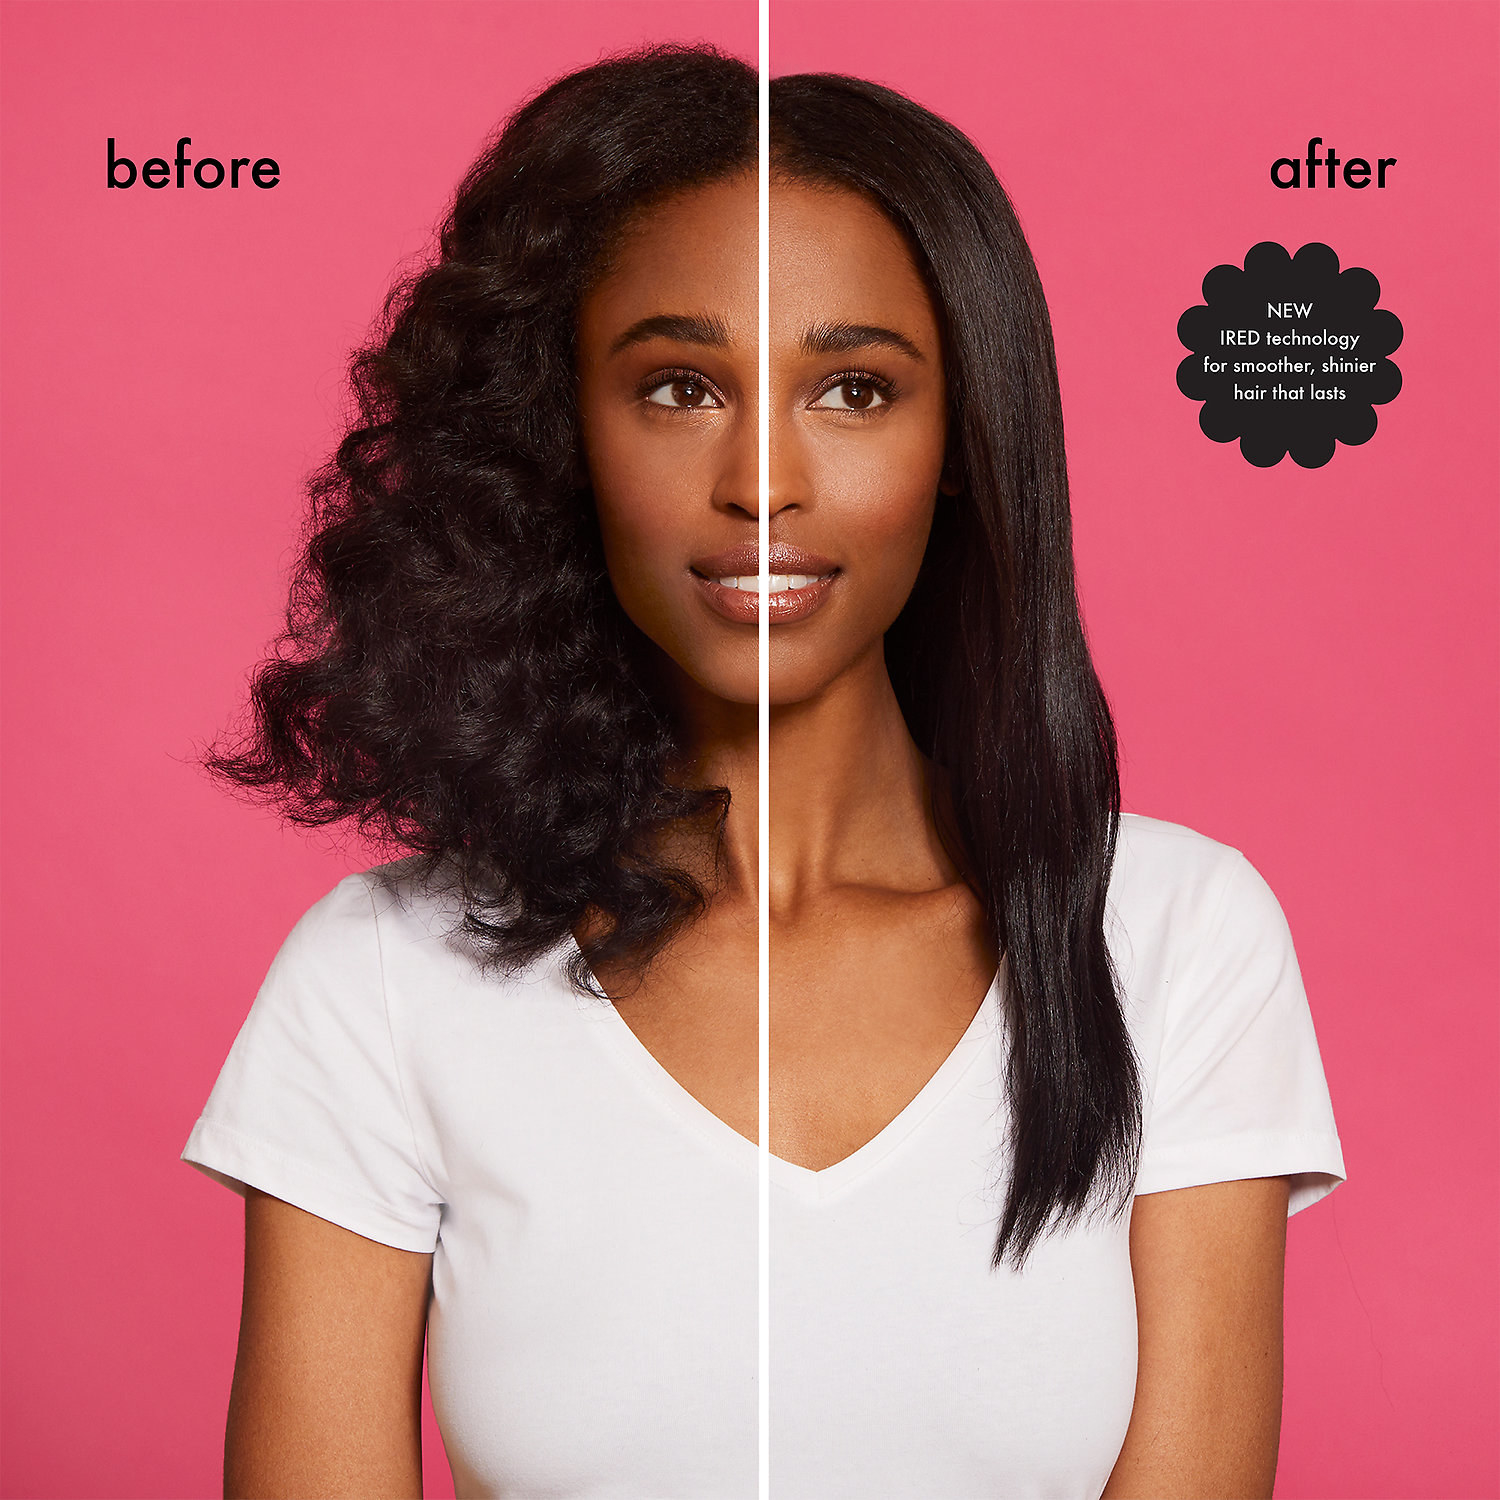 before-and-after photo of model with curly hair on the left, and straight hair on the right